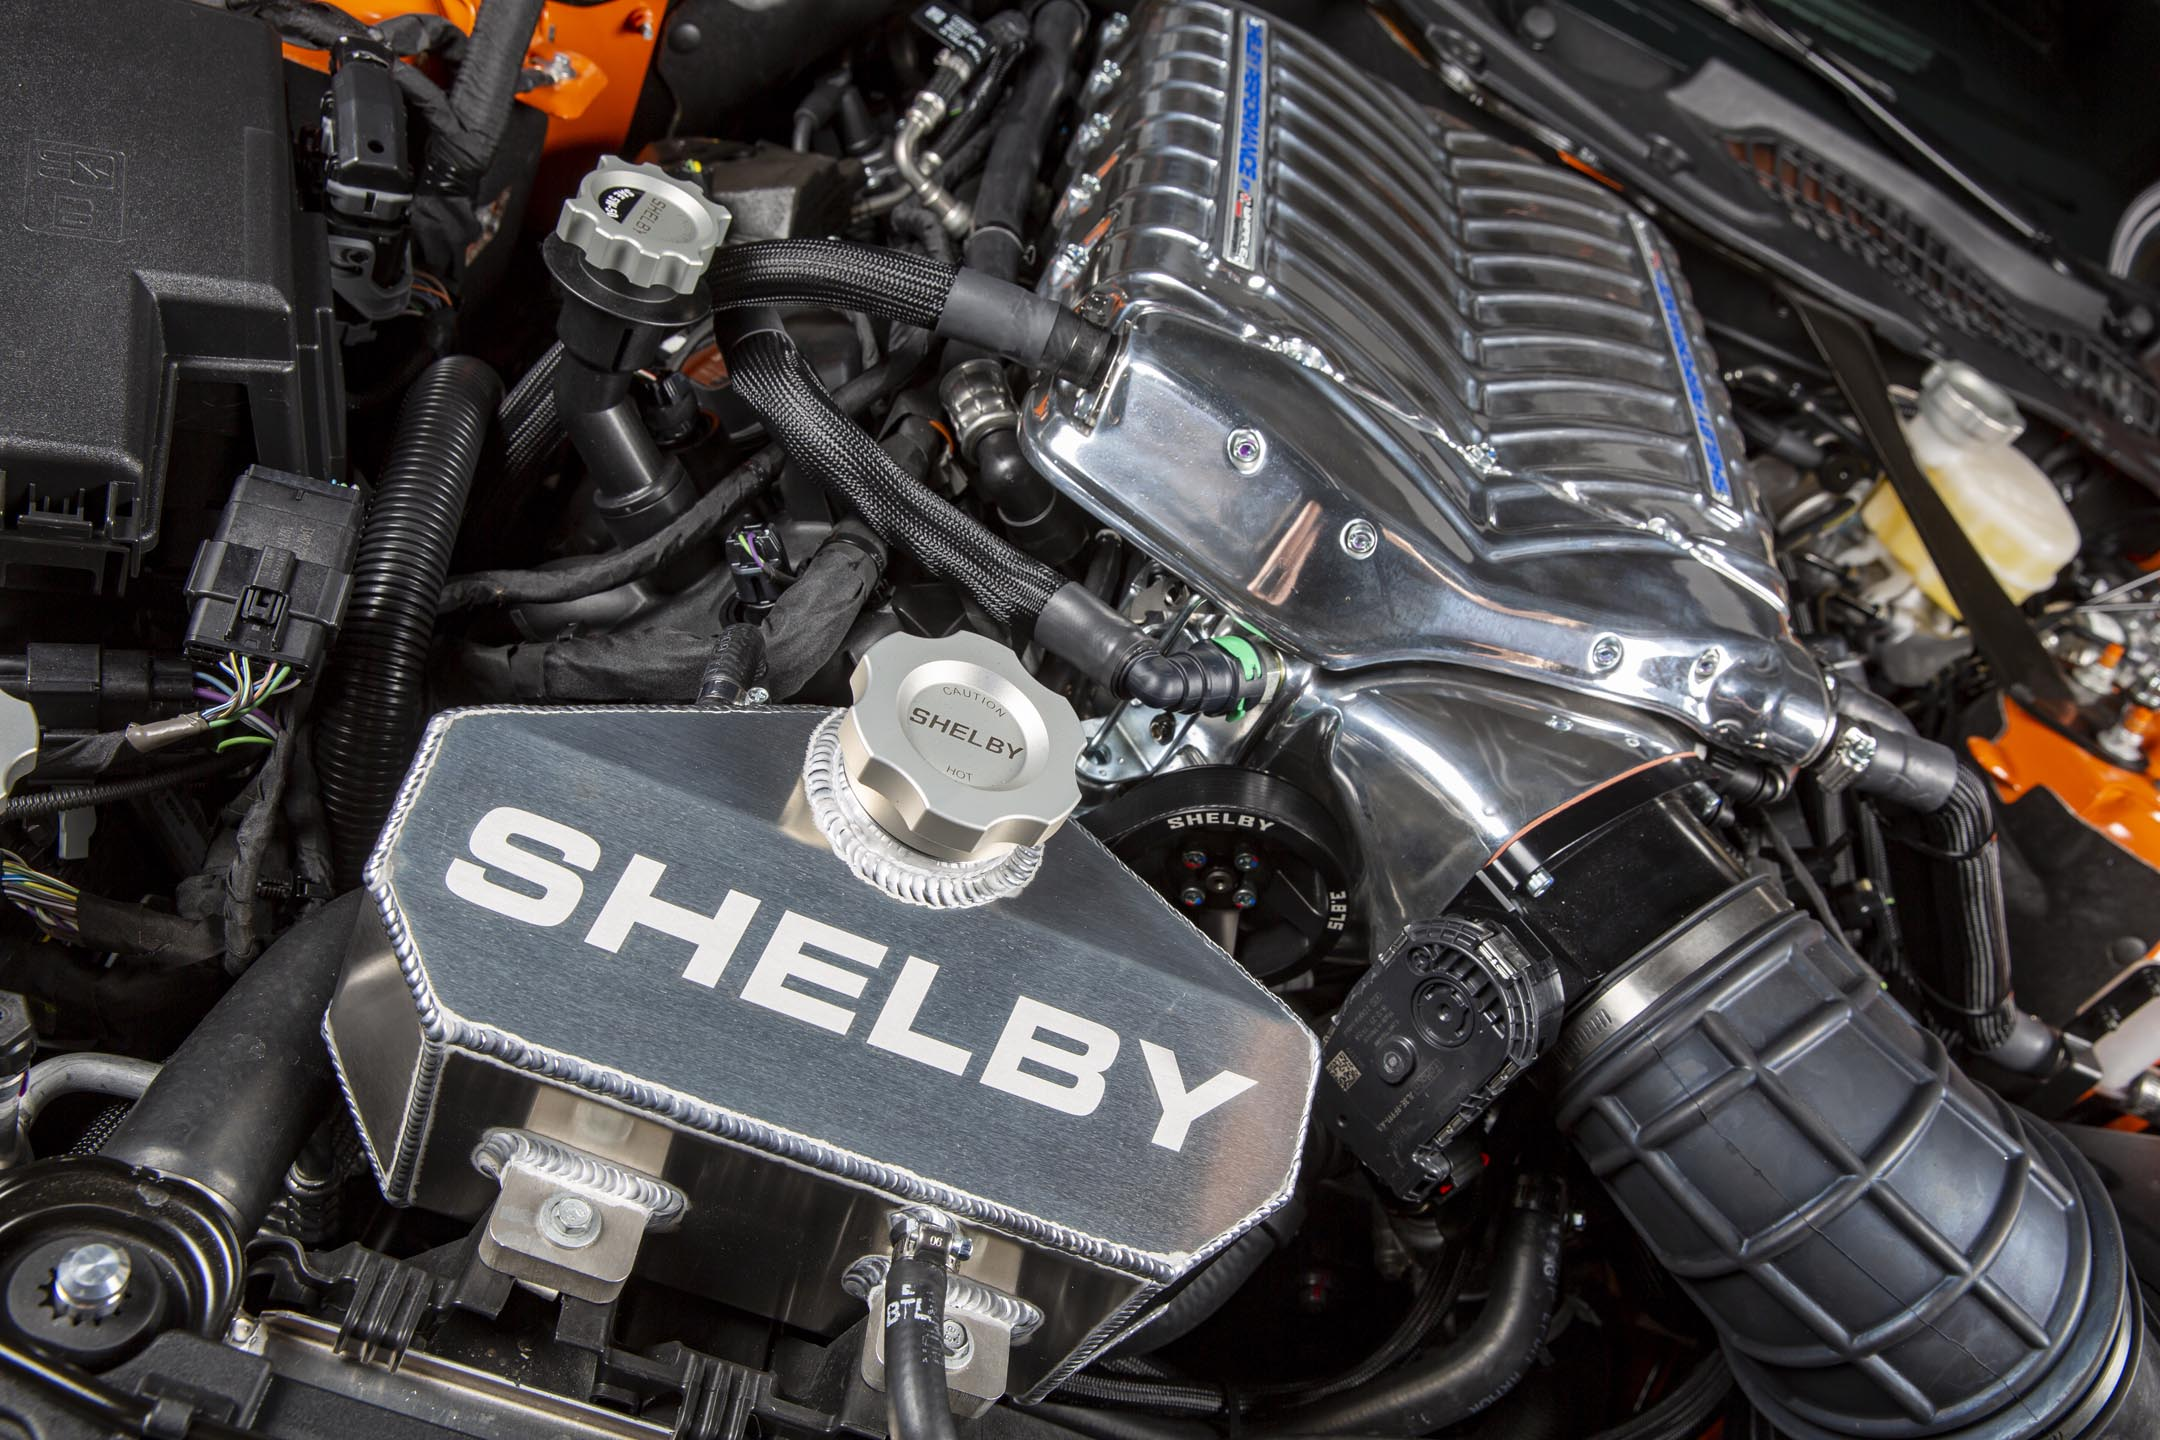 Ford Mustang Carroll Shelby Signature Series - 2020 - engine / moteur - preview - under the hood